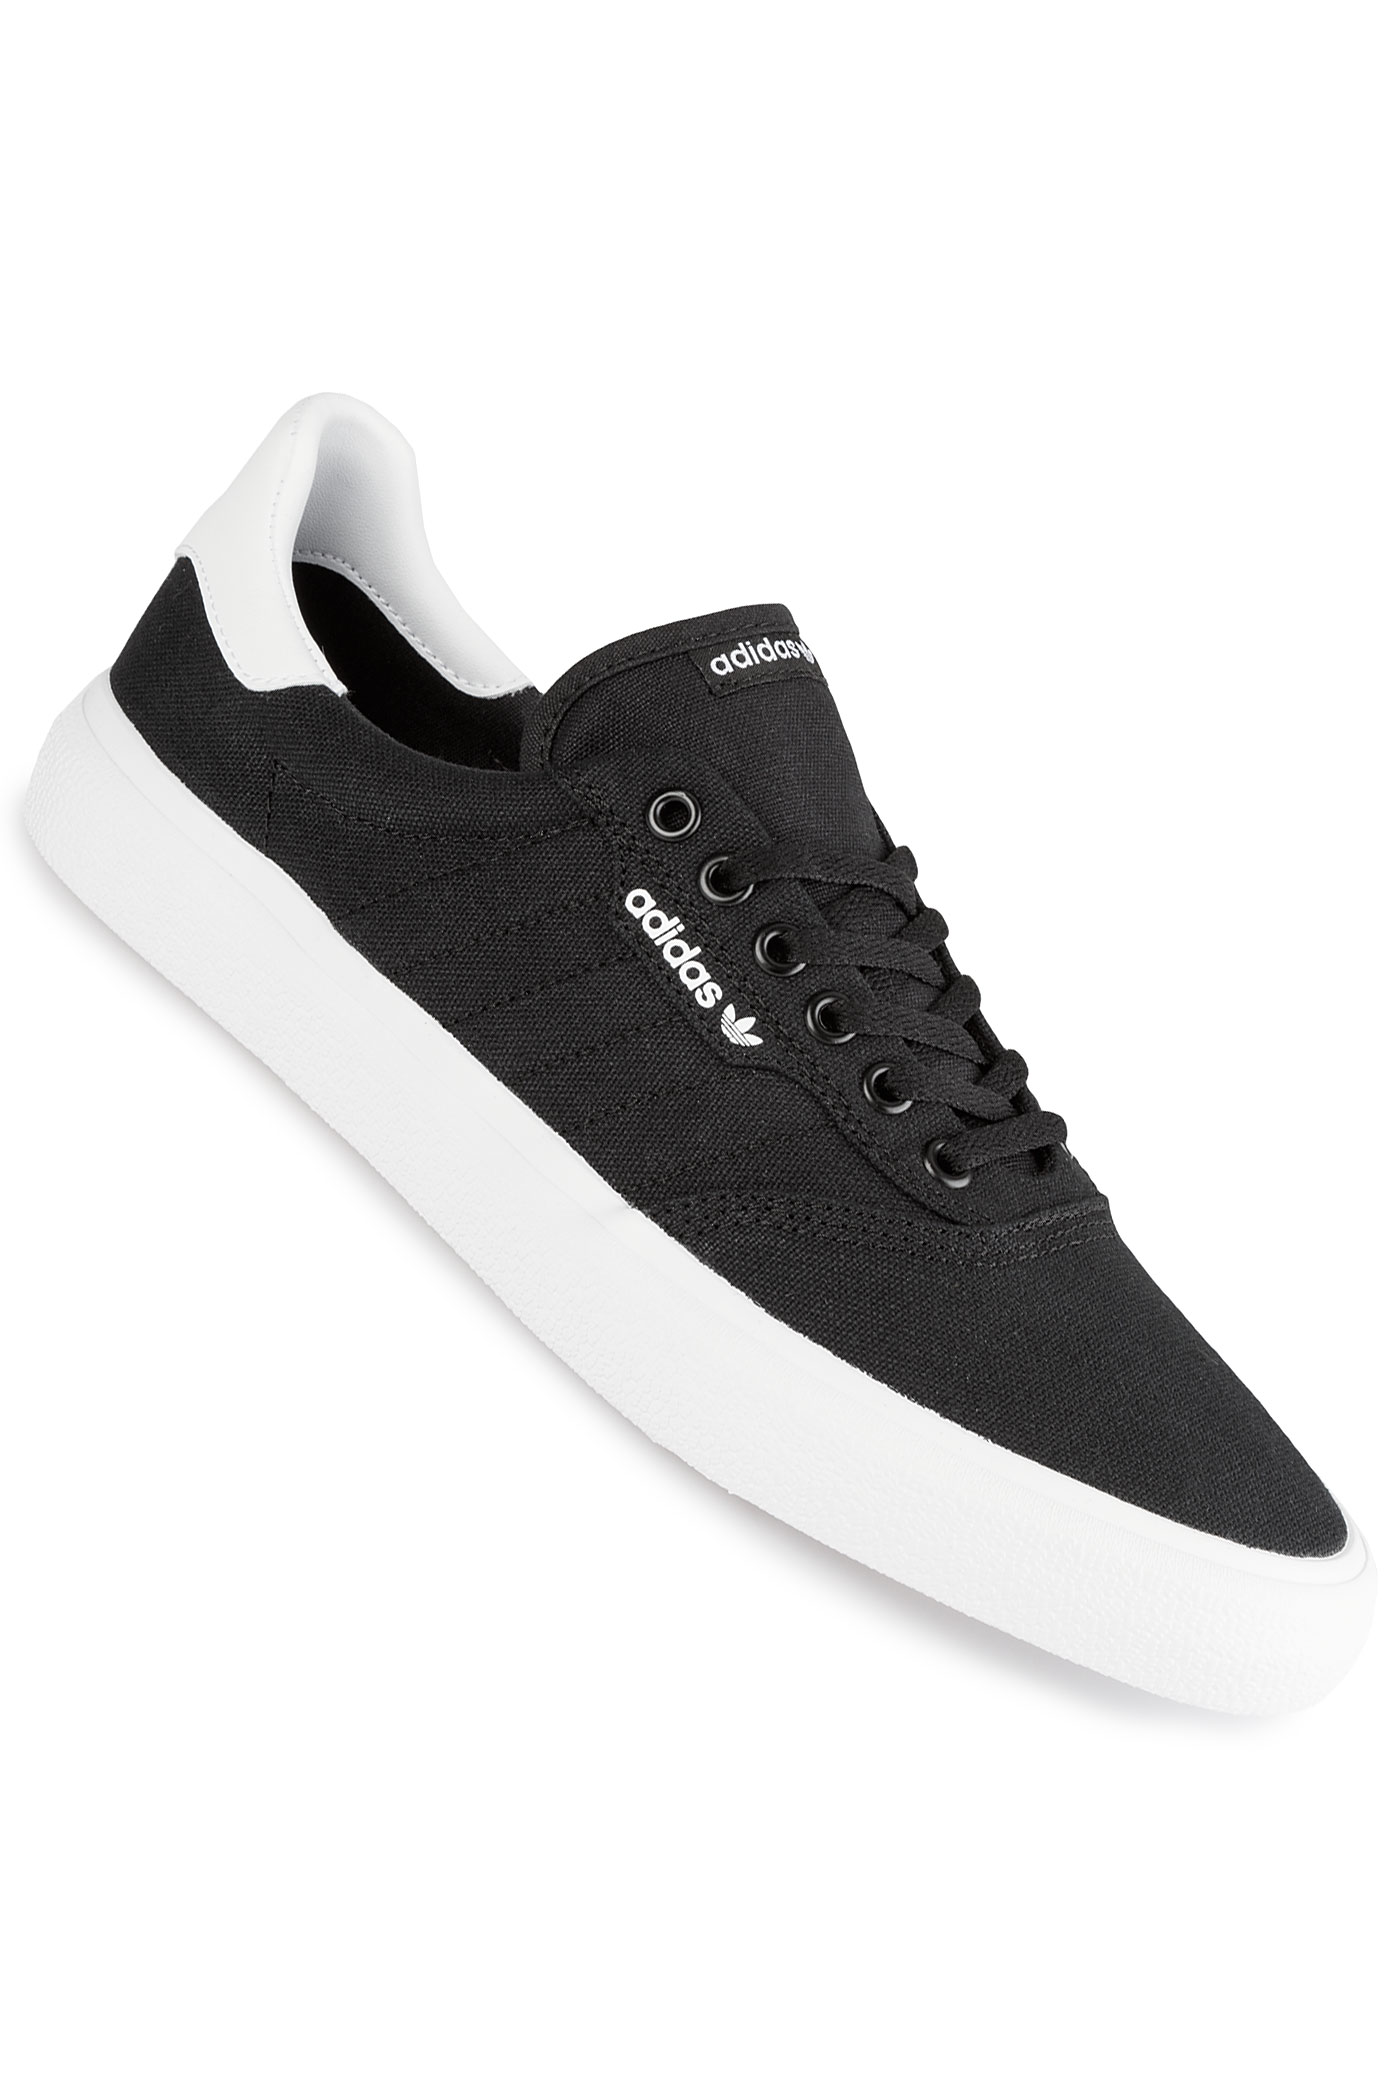 Skateboarding Core 3mc White Chaussurecore Black Adidas mgvf6yIYb7